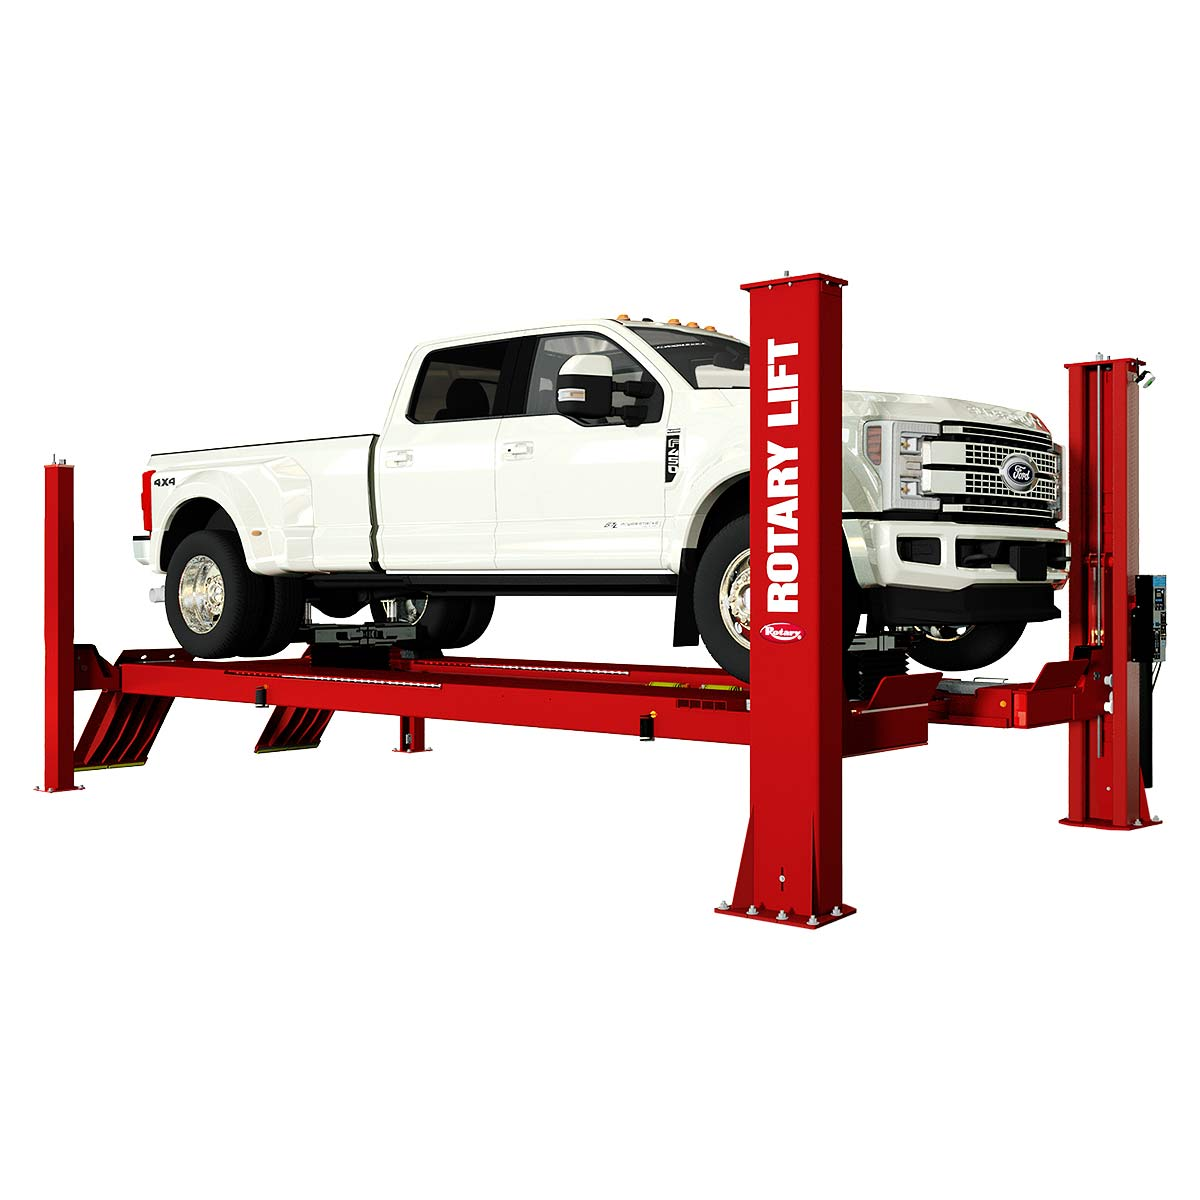 ARO22 22,000 lb. HD Open Front Drive-On Alignment Lift